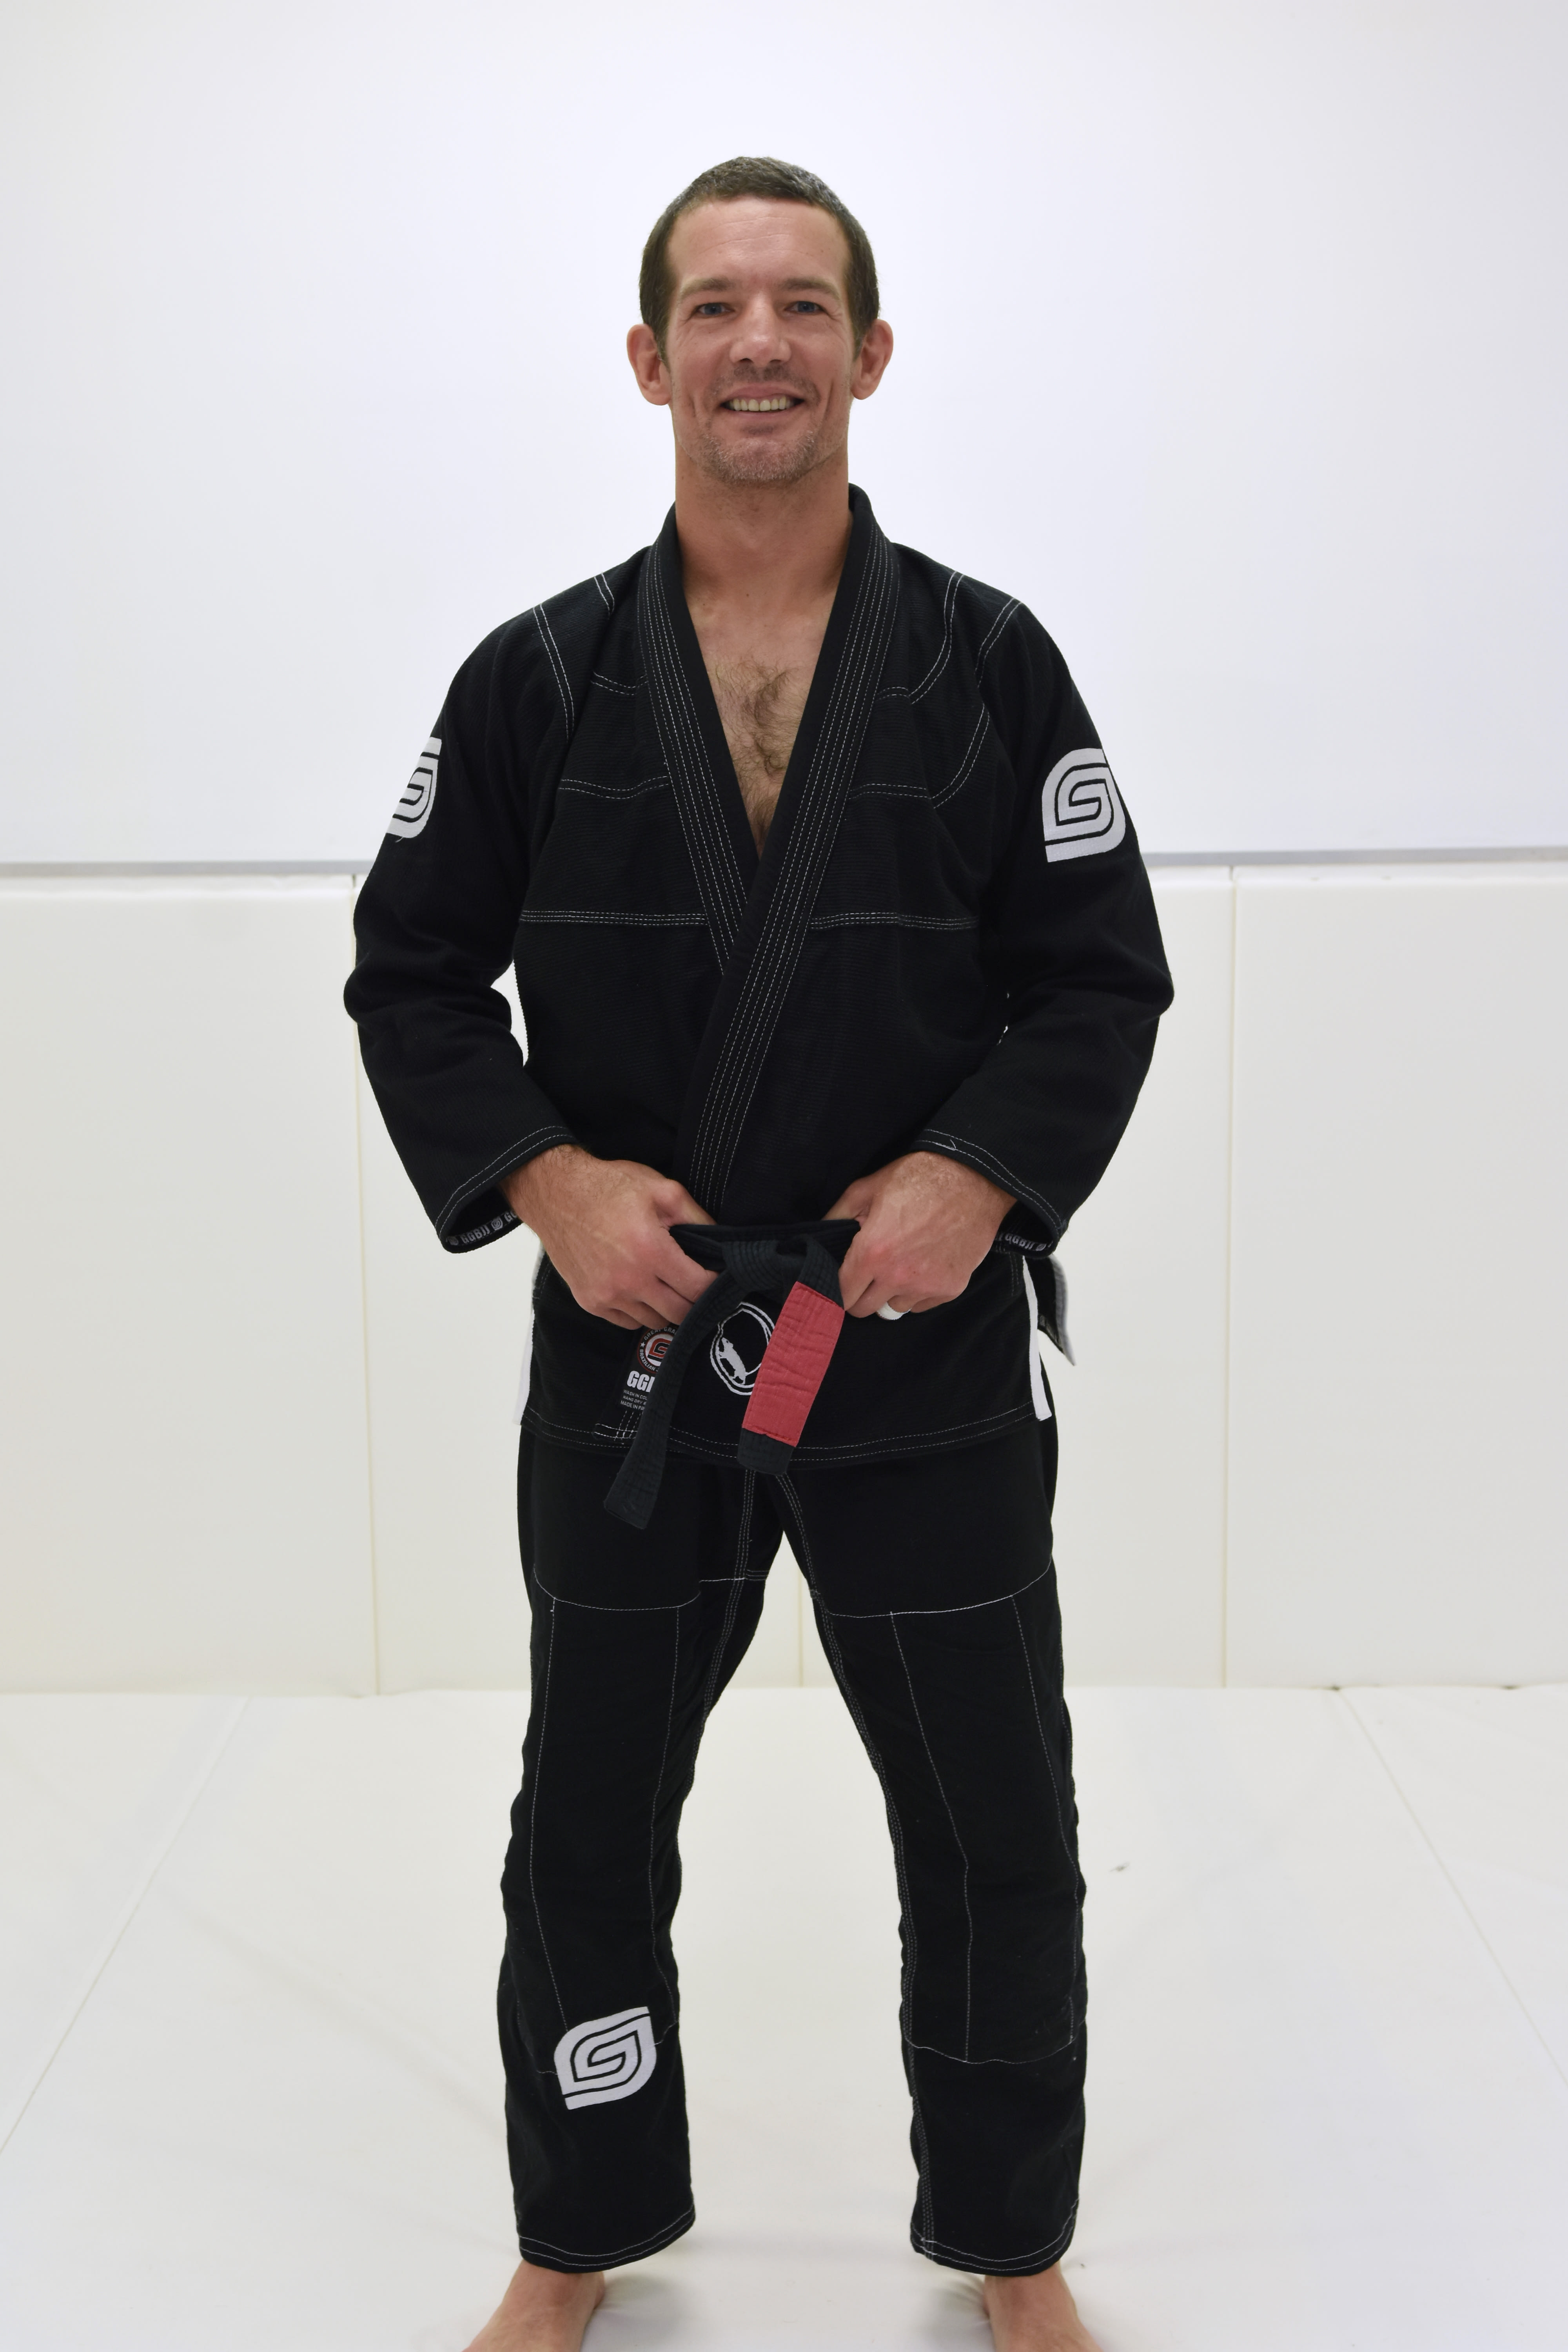 Professor Jonathan Crabtree in Fort Mill - Great Grappling Brazilian Jiu Jitsu